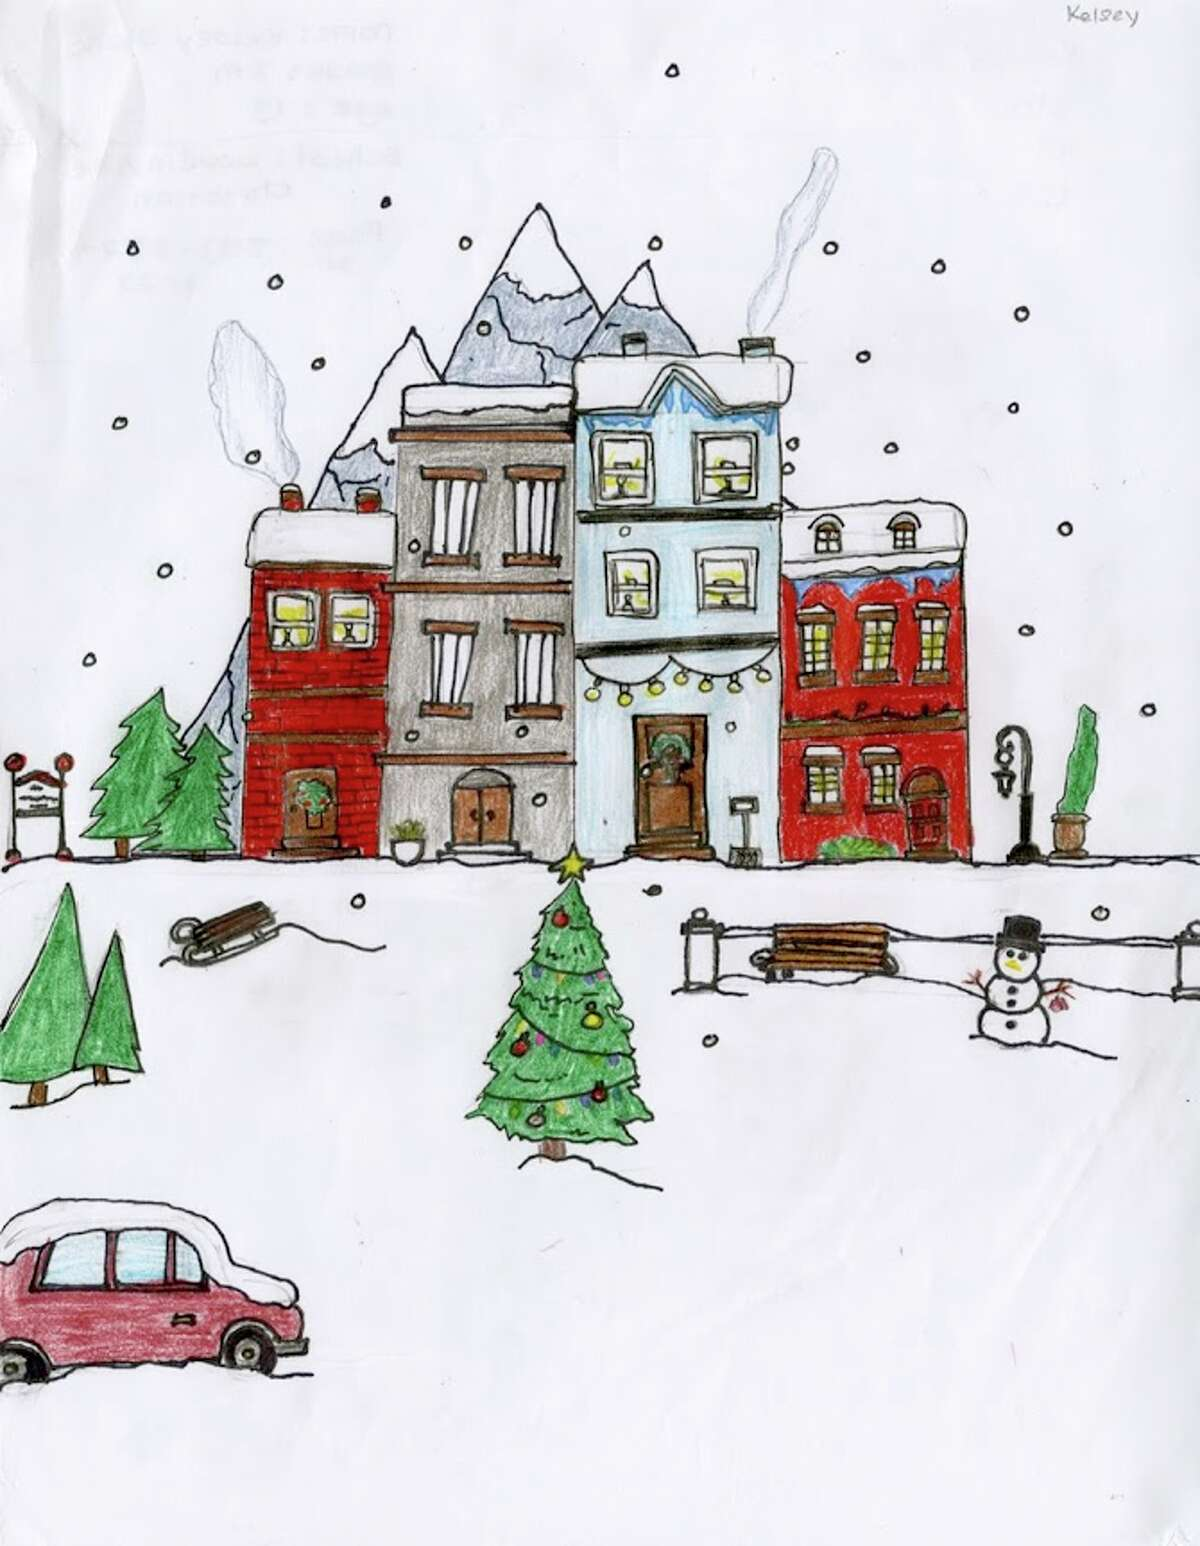 Did anyone say Rocky Mountain Christmas?That's what we felt when seeing the entry by Kelsey Slane, an 8th grader at Loudonville Christian School.